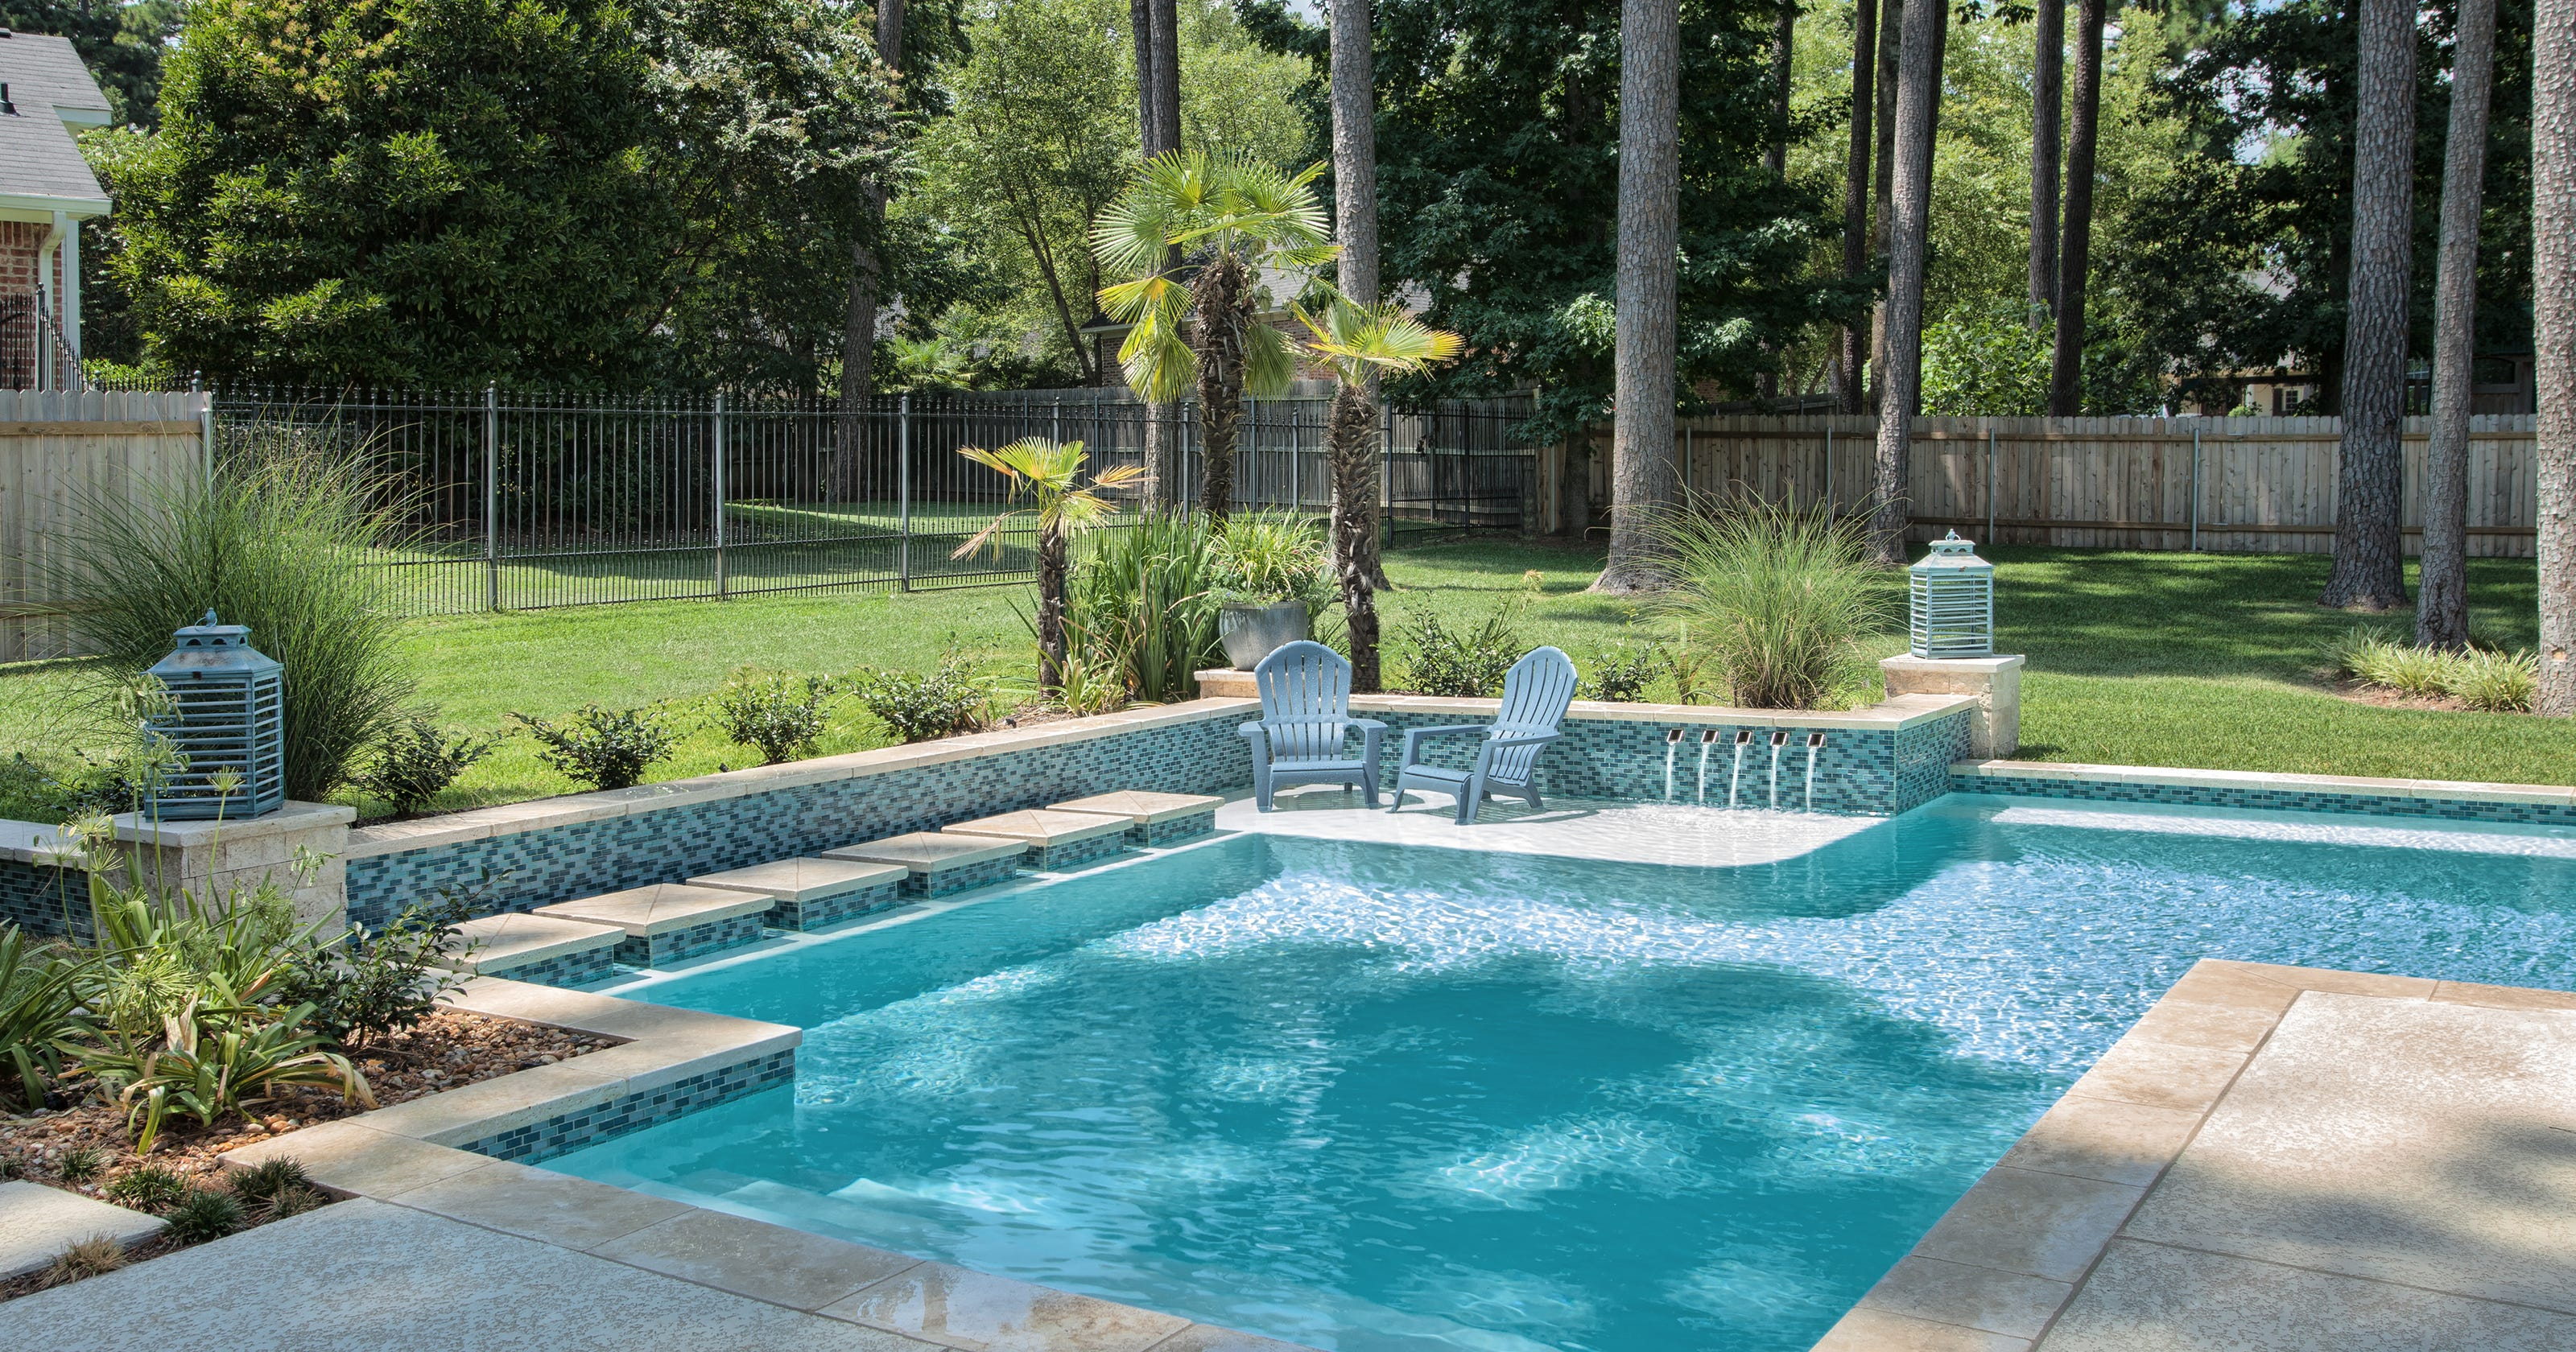 Find high quality image Backyard Oasis With Pool Ideas ... on Backyard Oasis Ideas id=72586